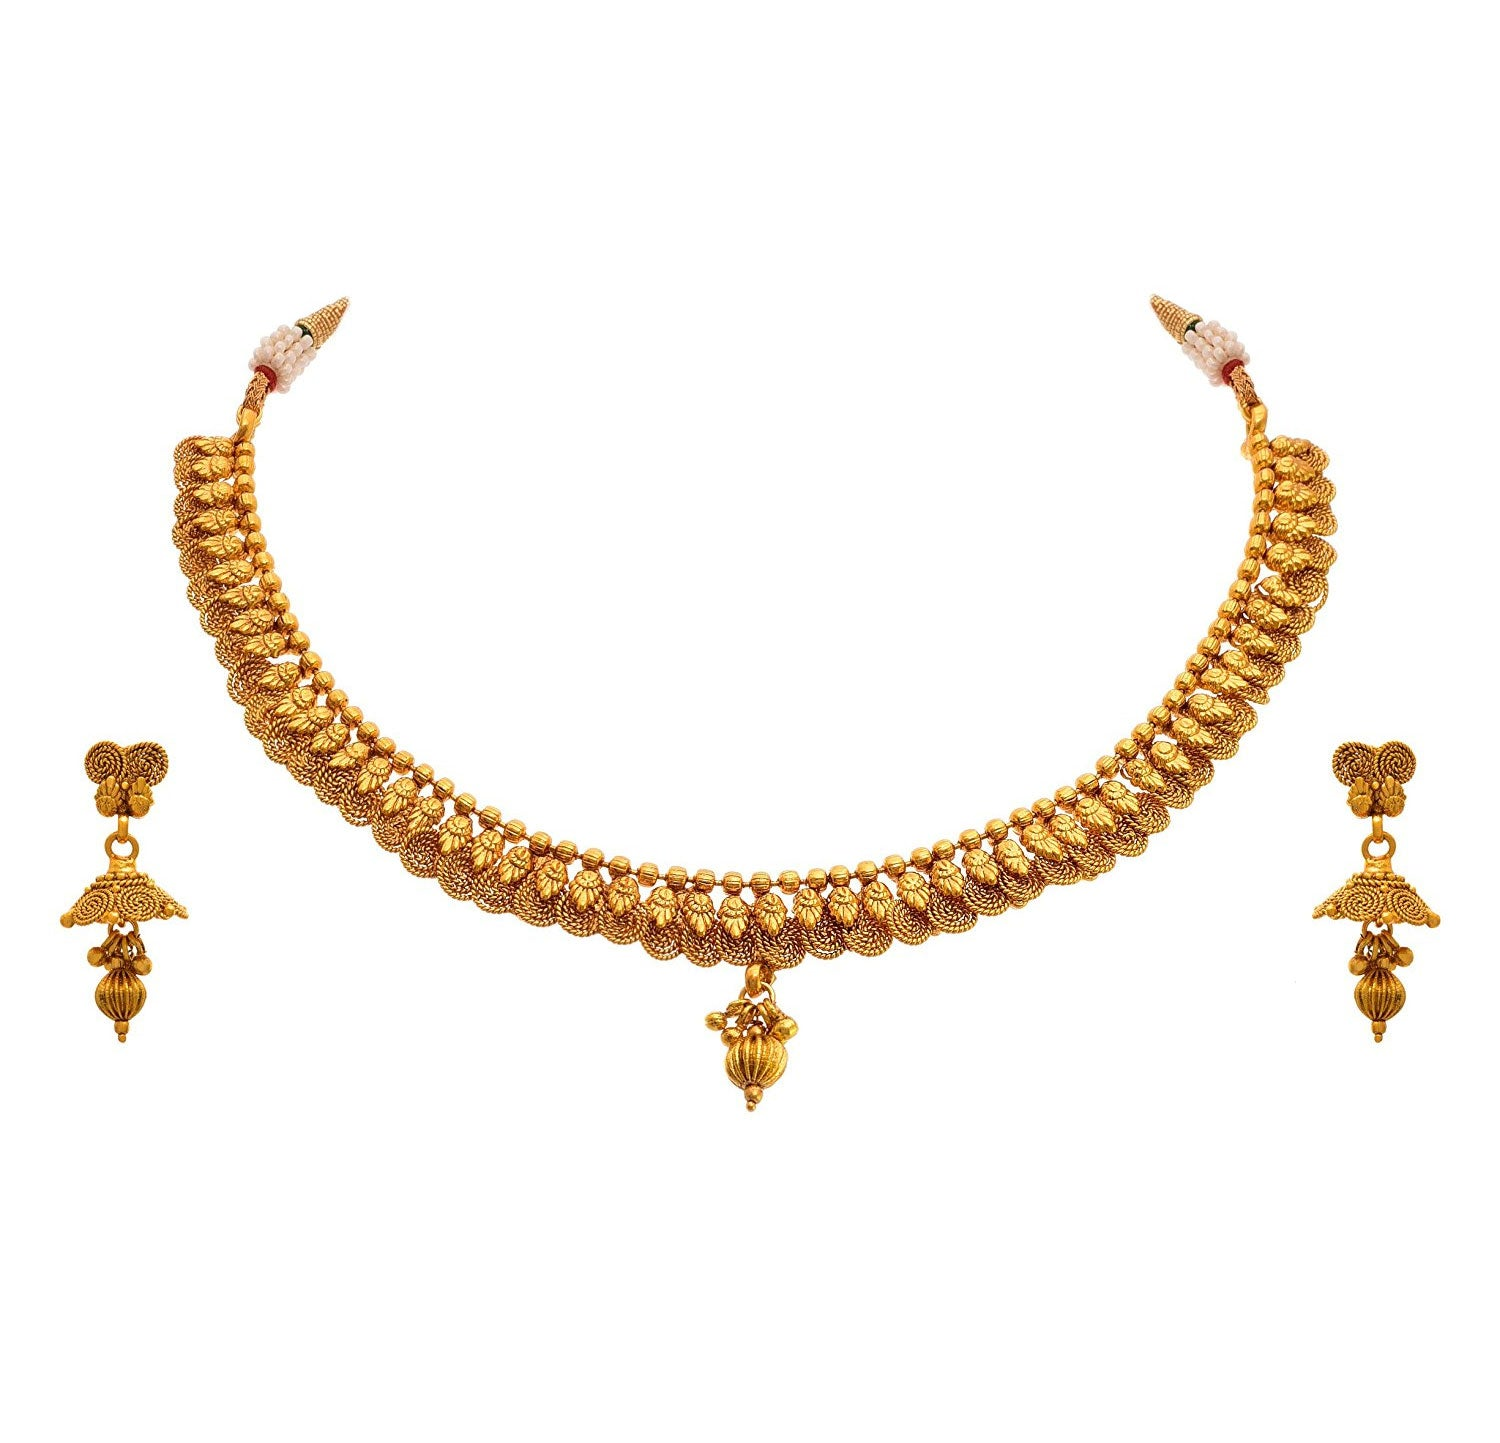 JFL - Traditional Ethnic One Gram Gold Plated Spiral Designer Necklace Set with Earring for Women and Girls